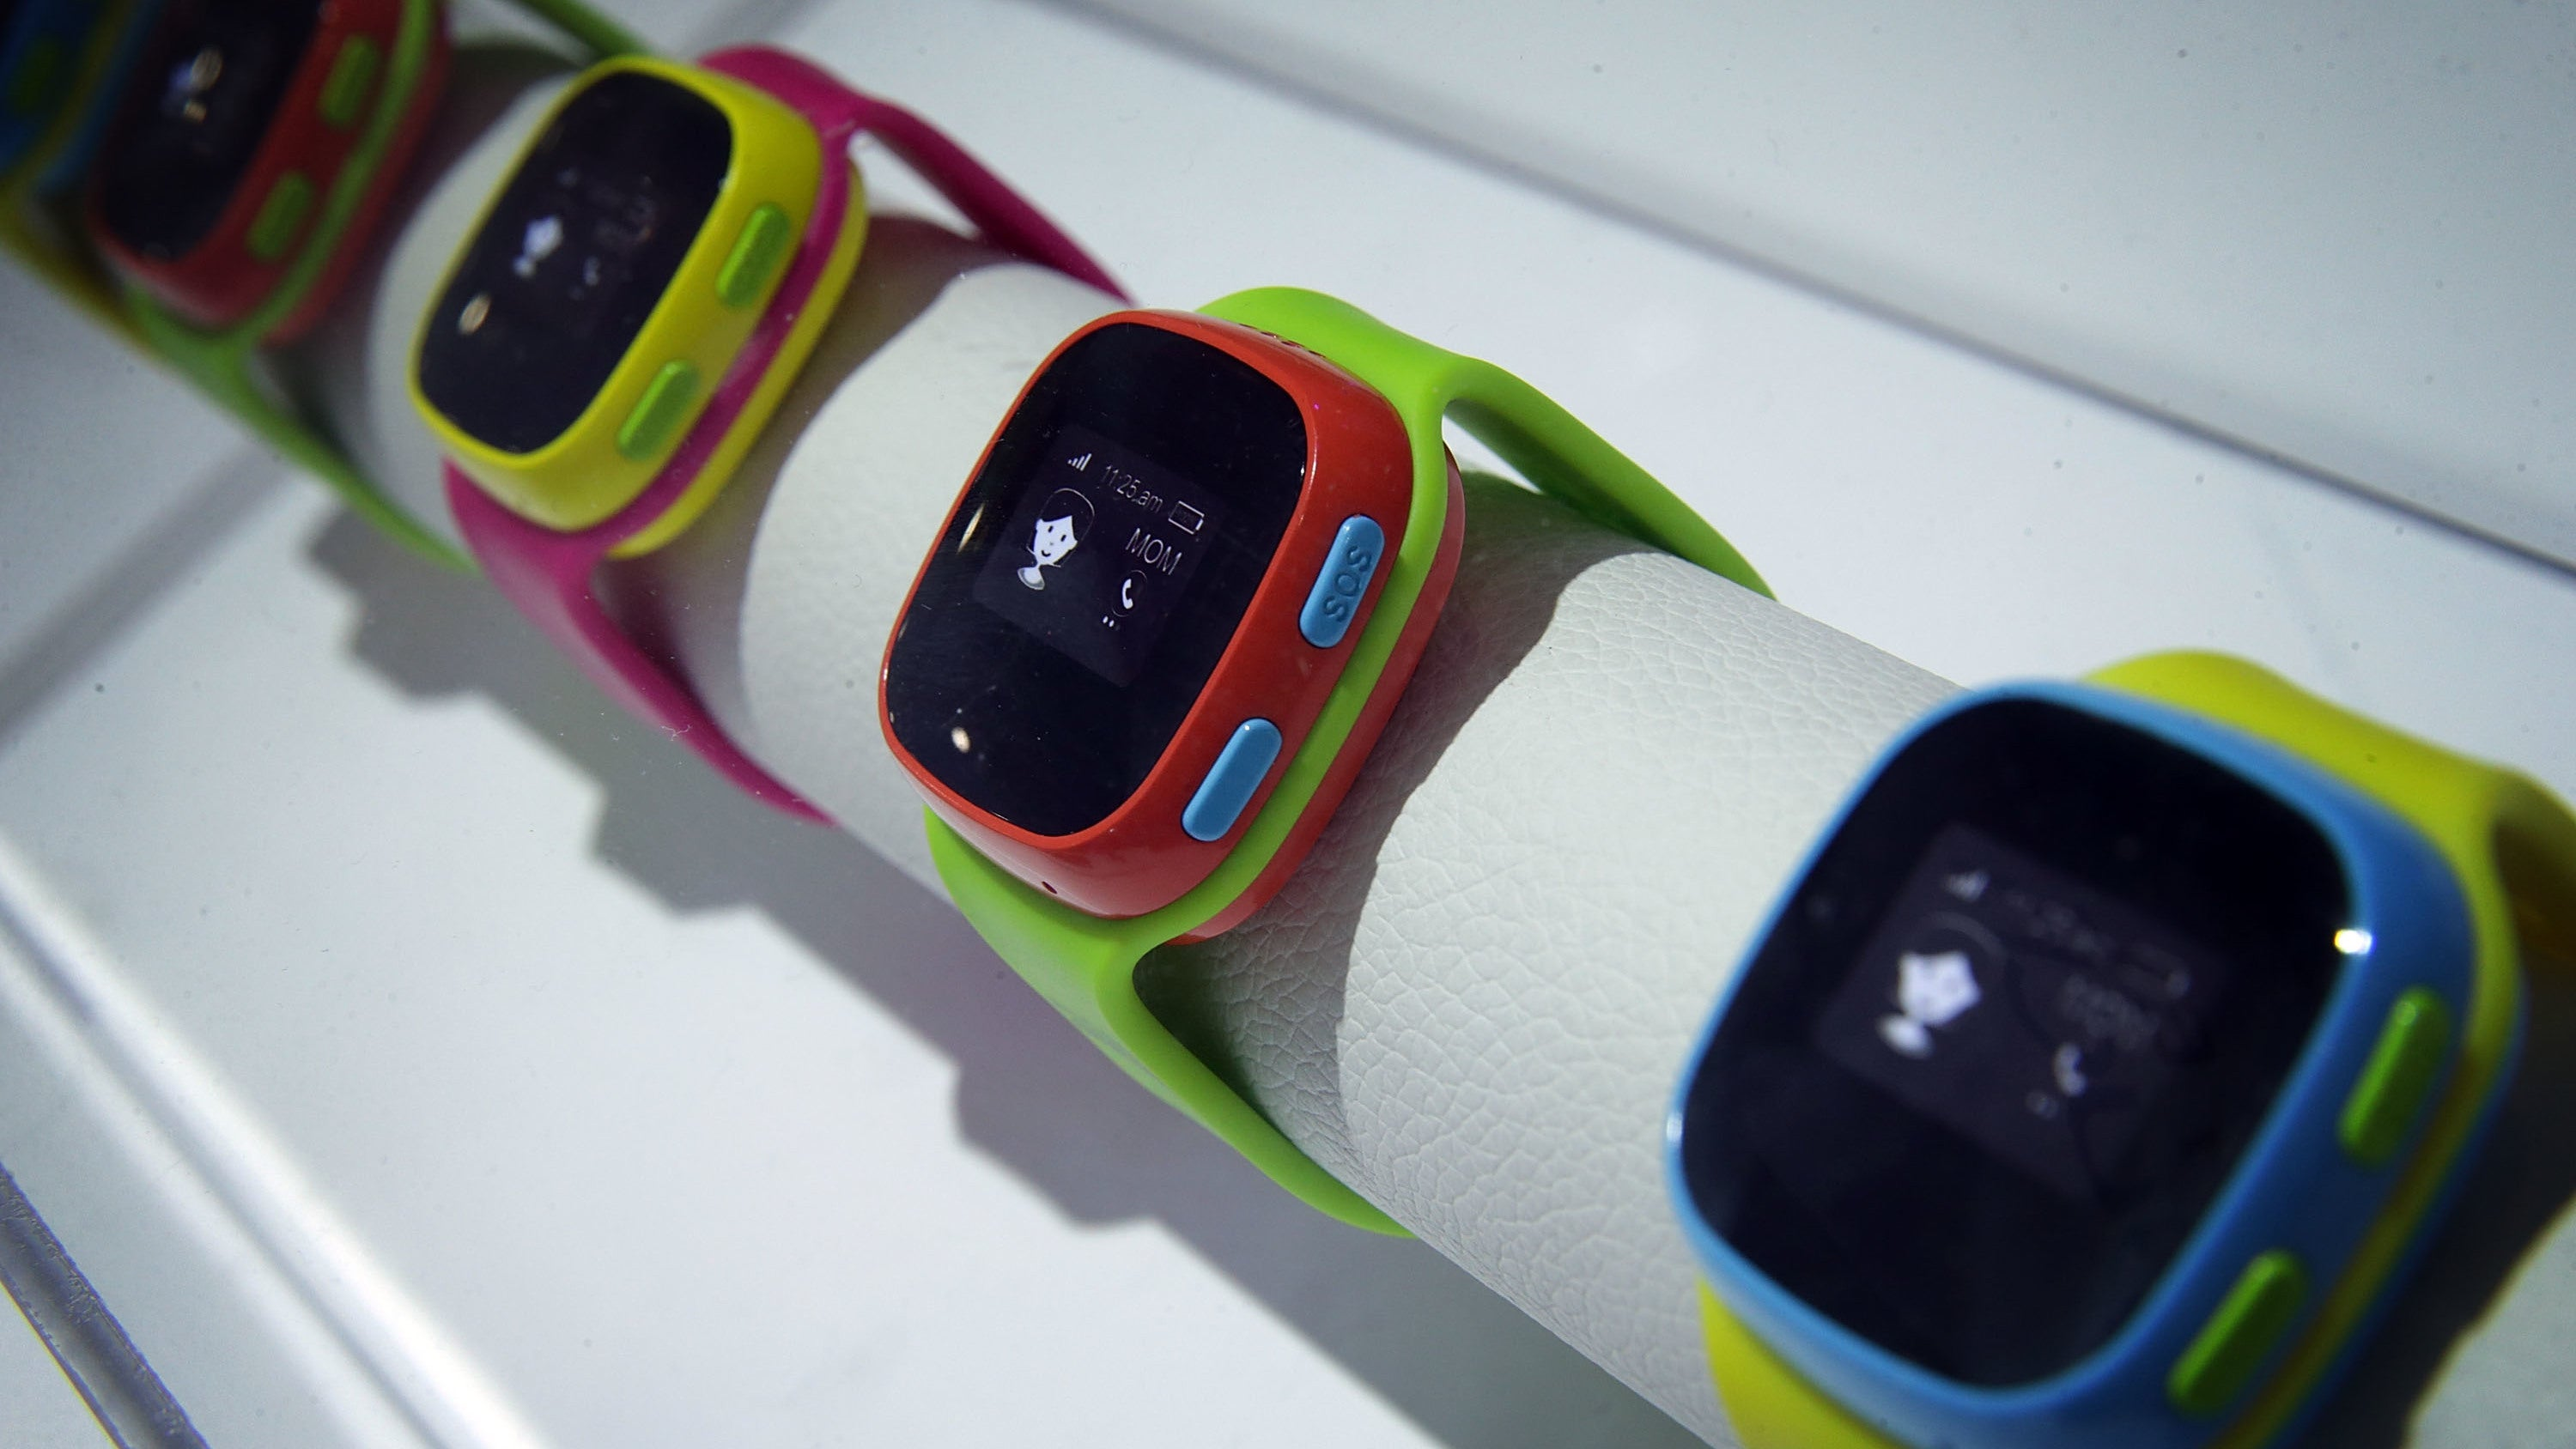 Germany issues ban on children's smartwatches, urges parents to destroy them